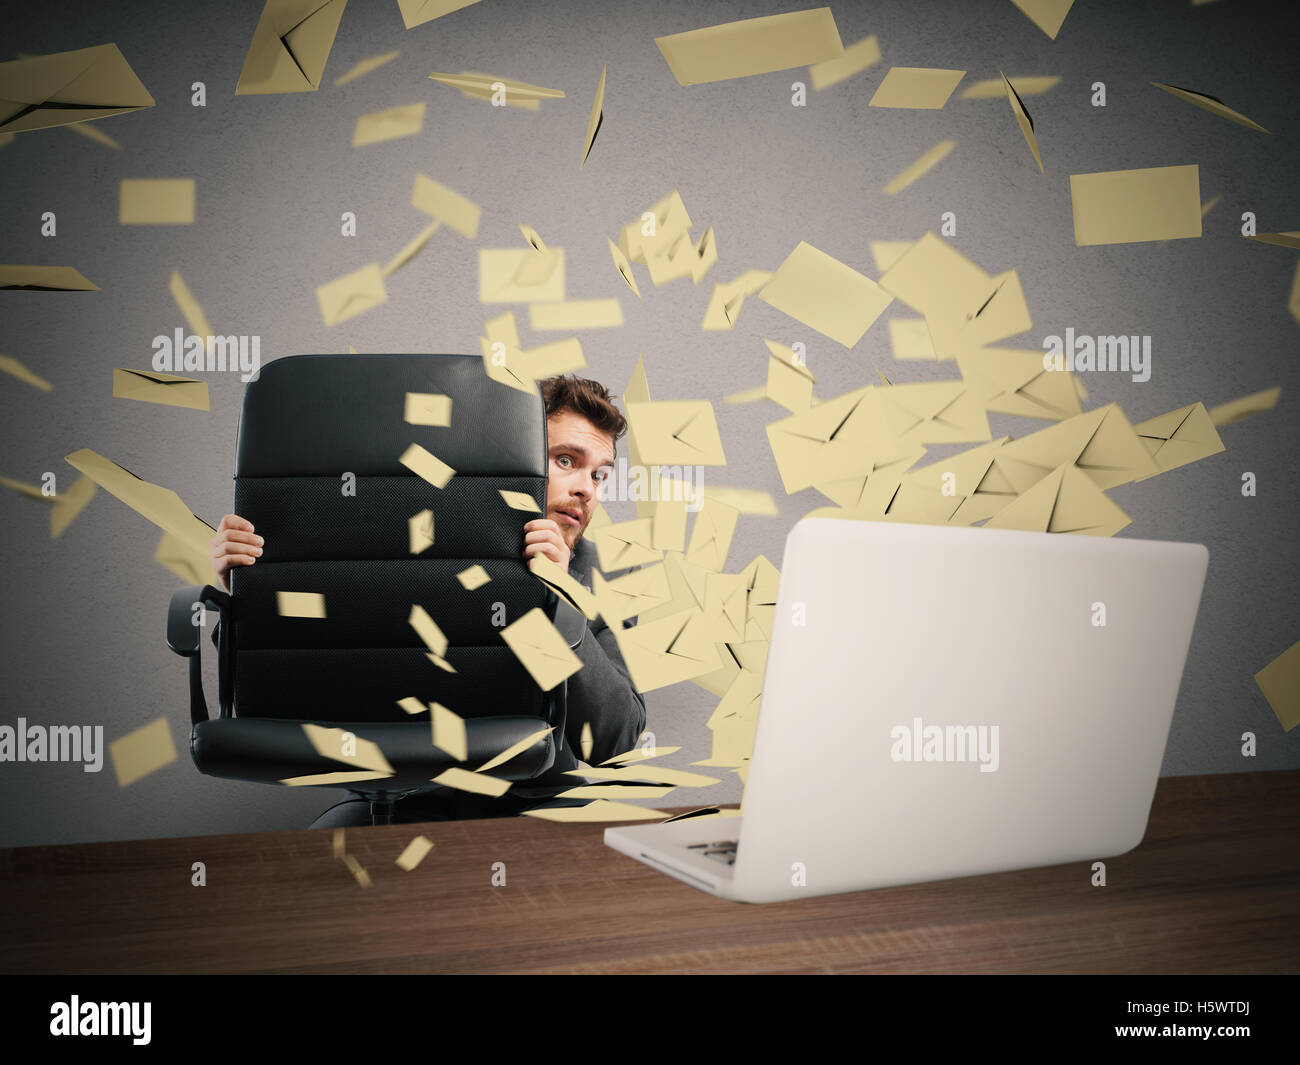 Scared by too many email - Stock Image